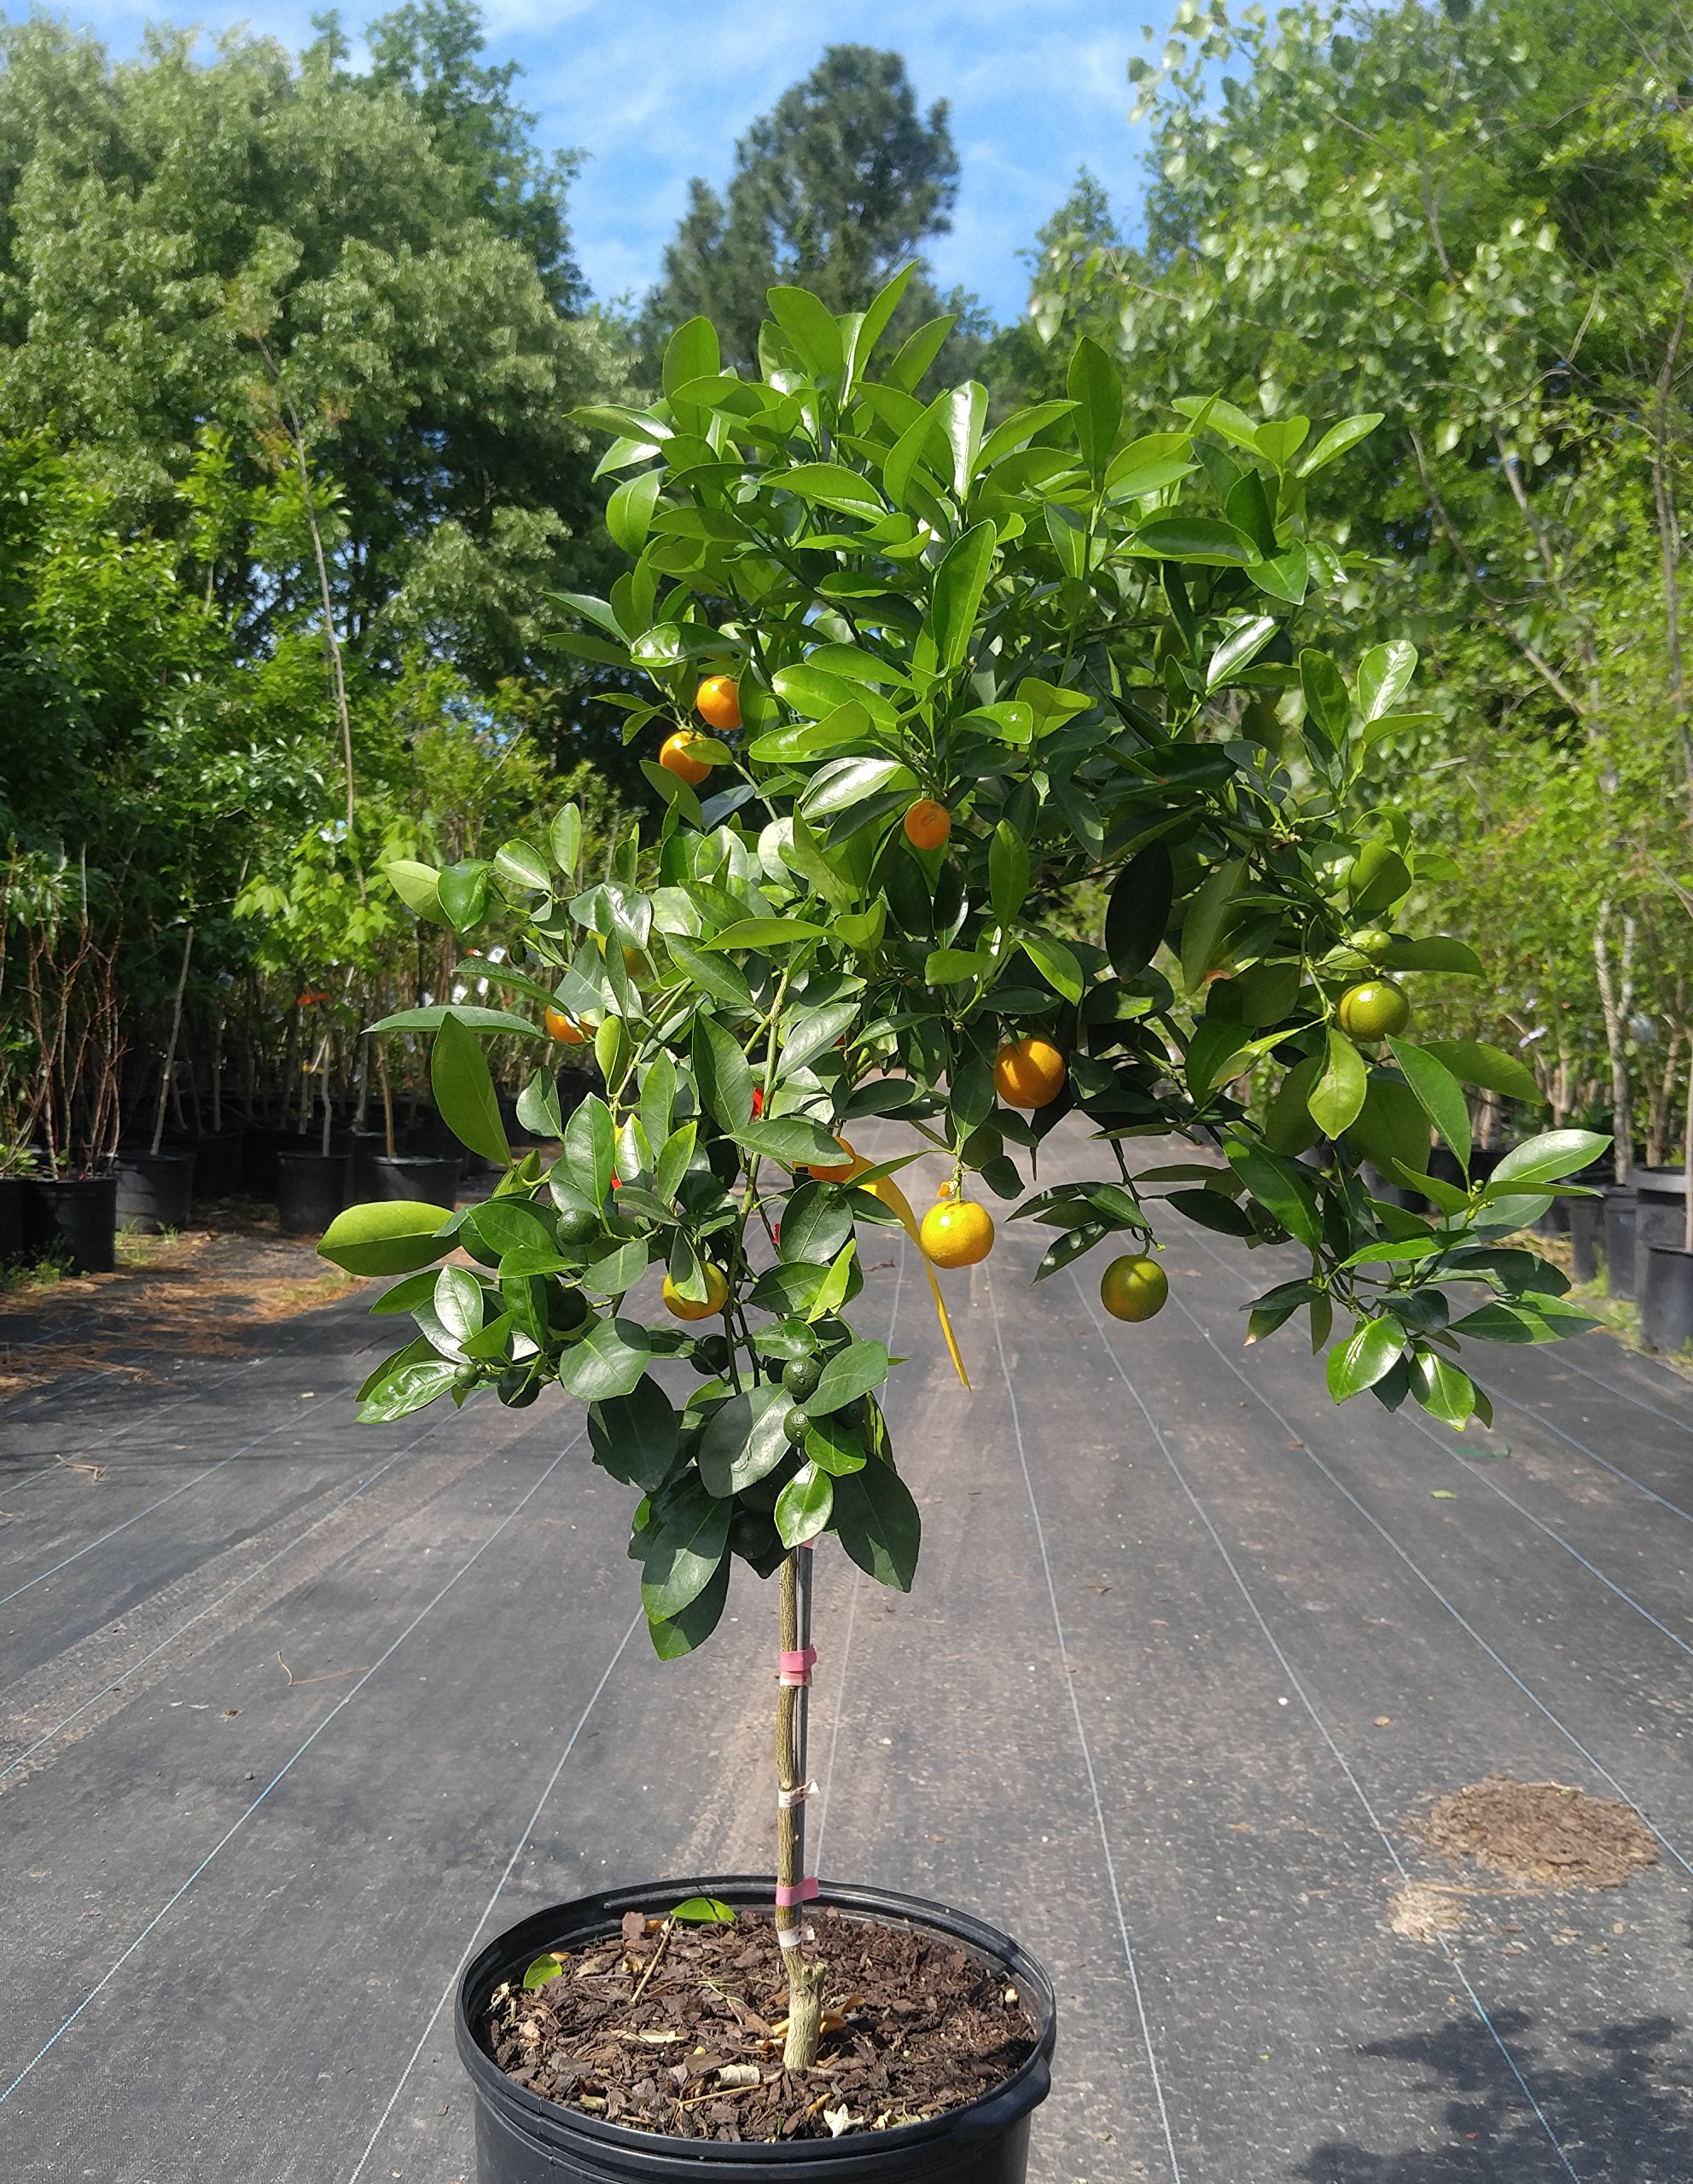 Calamondin Orange Tree - (2 Year Old) Can not Ship Any Citrus Outside The State of Texas